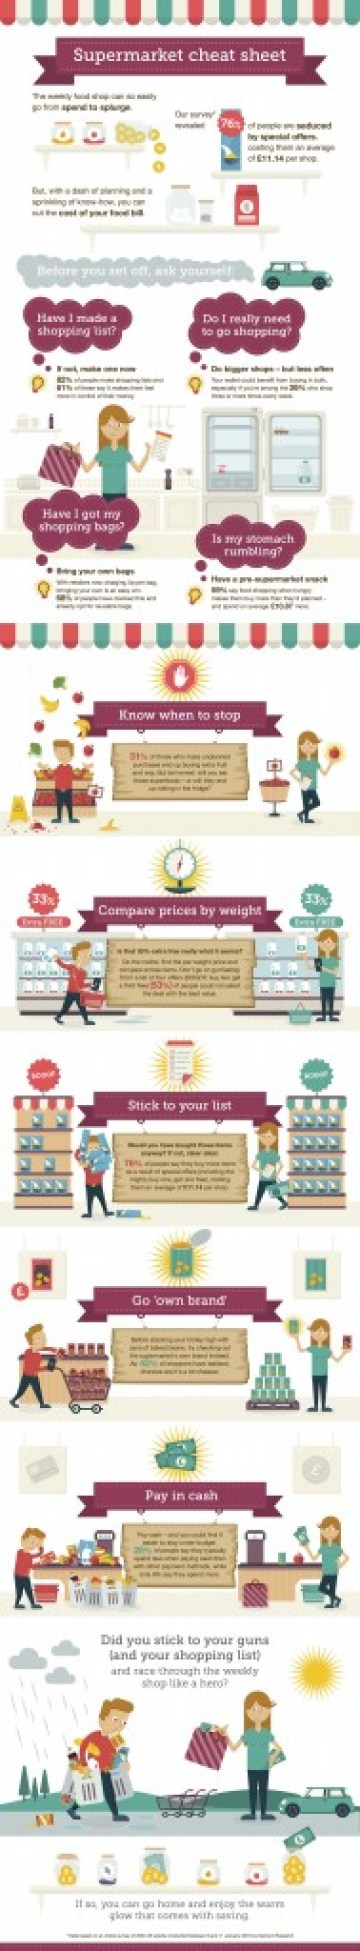 Supermarket hacks infographic